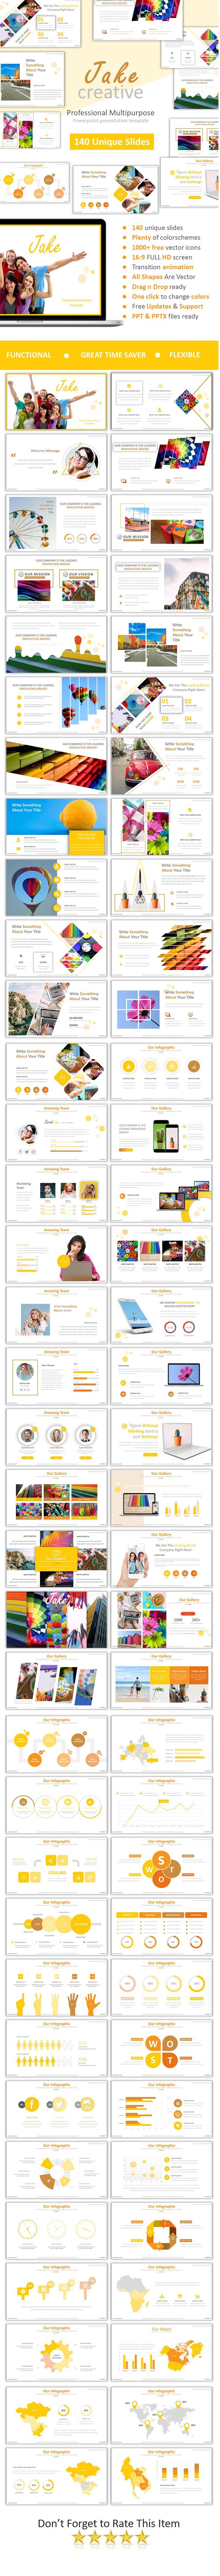 best 25+ creative powerpoint templates ideas on pinterest | power, Modern powerpoint